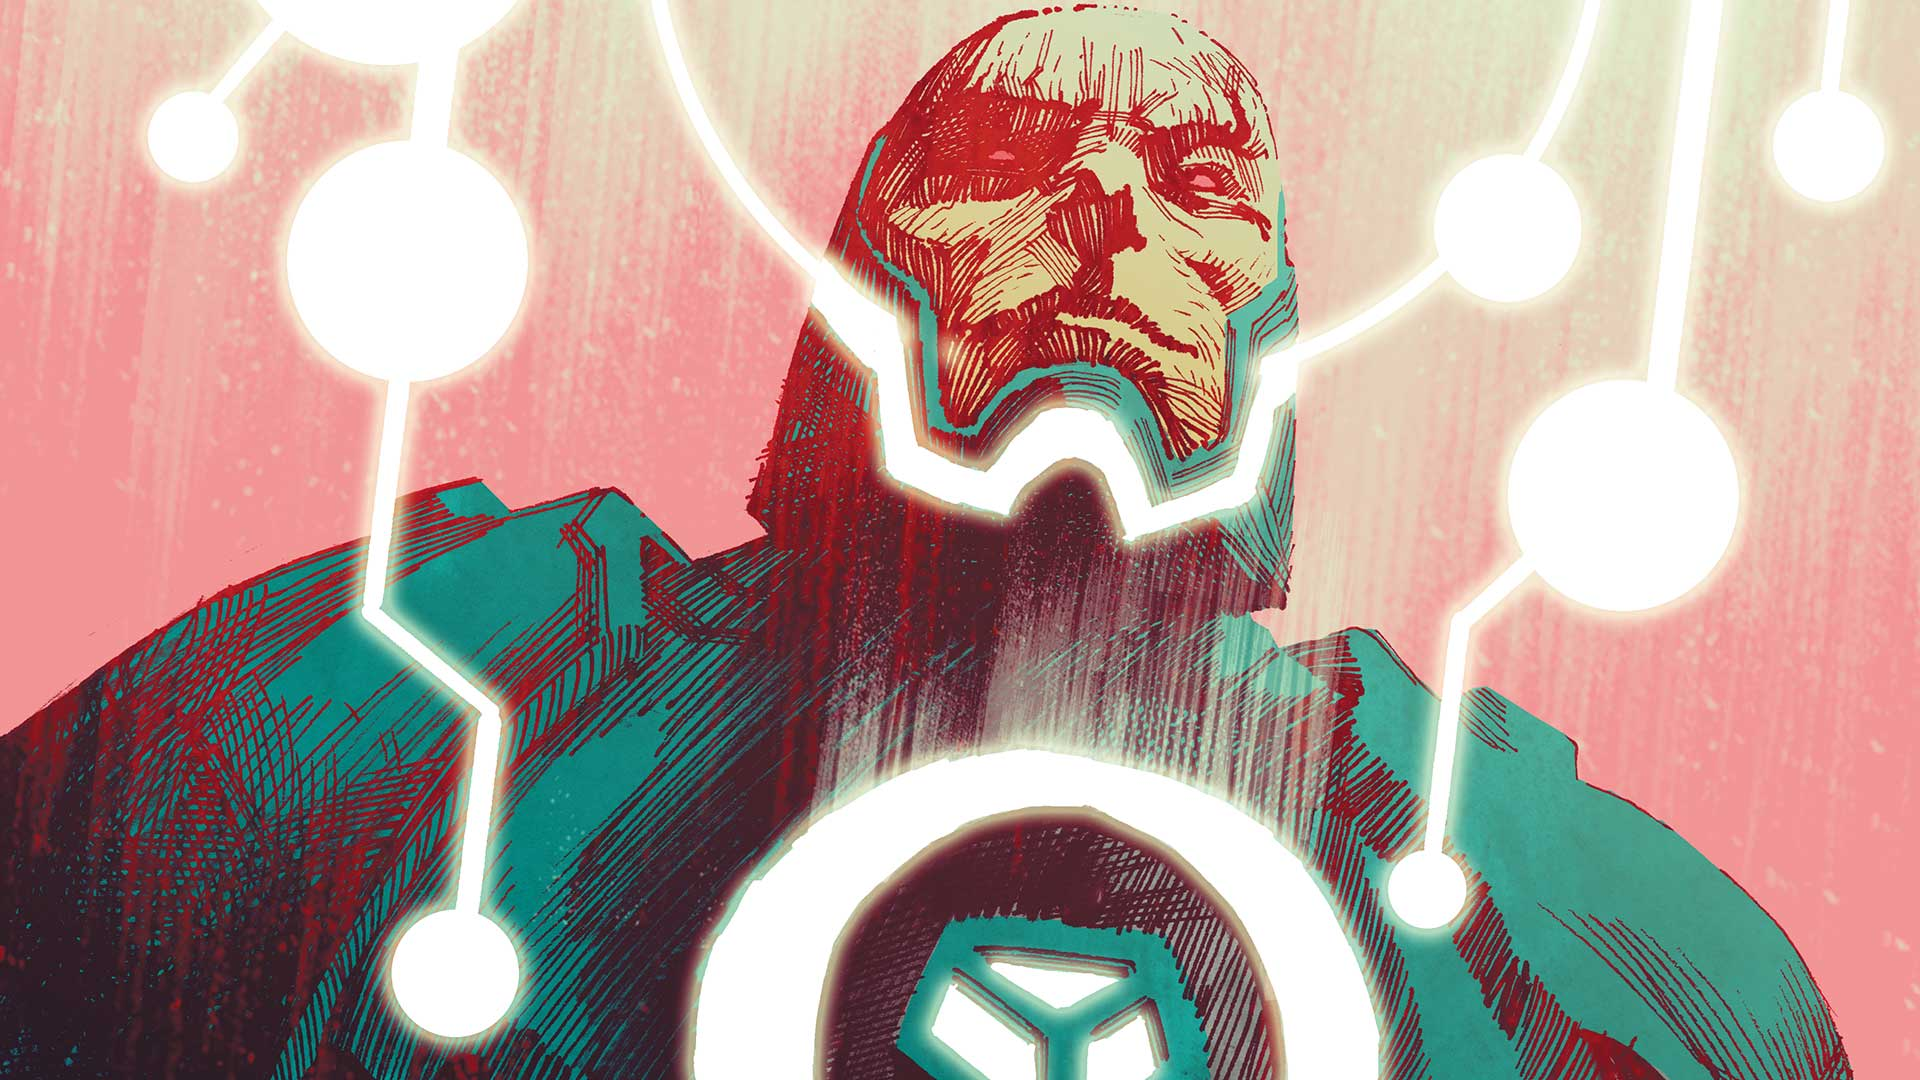 Top 20 Overpowered most powerful dc comics characters darkseid 5